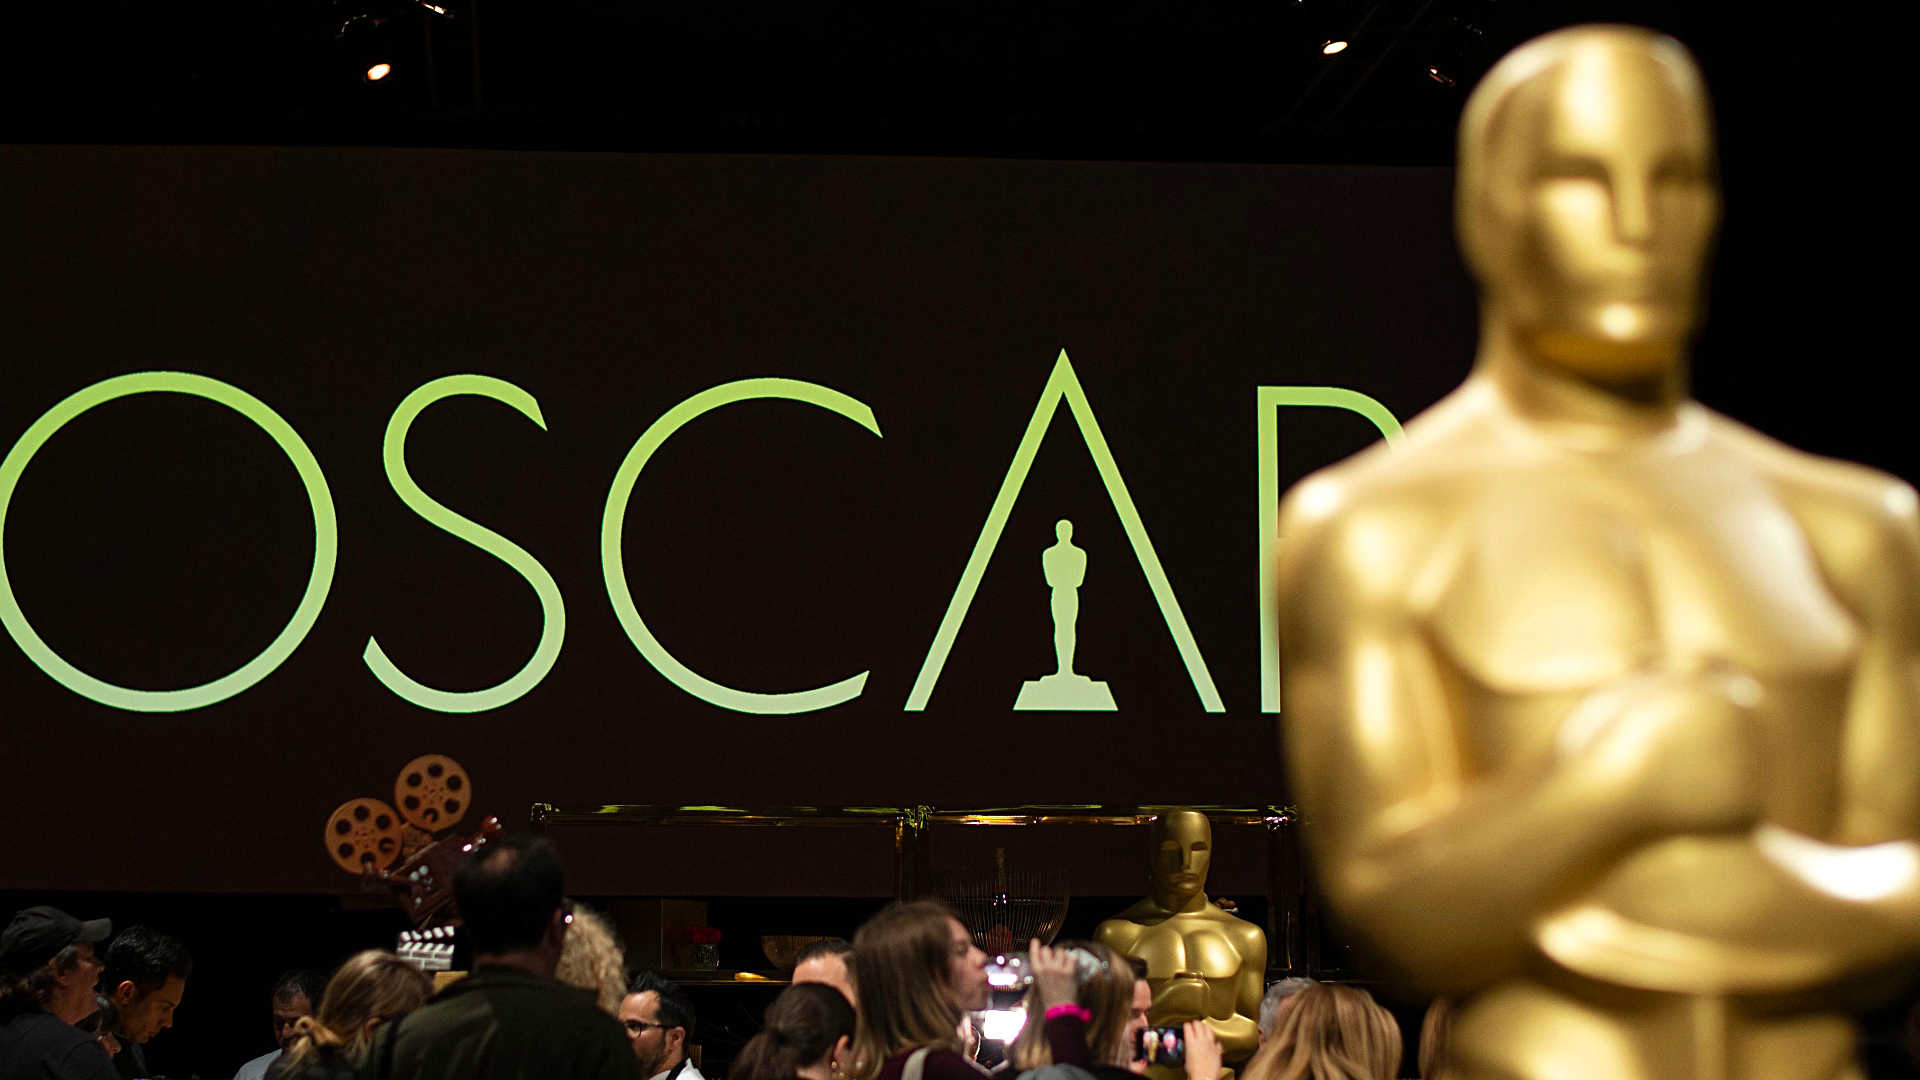 Oscars 2020 predictions, odds, nominations more: How to watch the Academy Awards, make pool picks